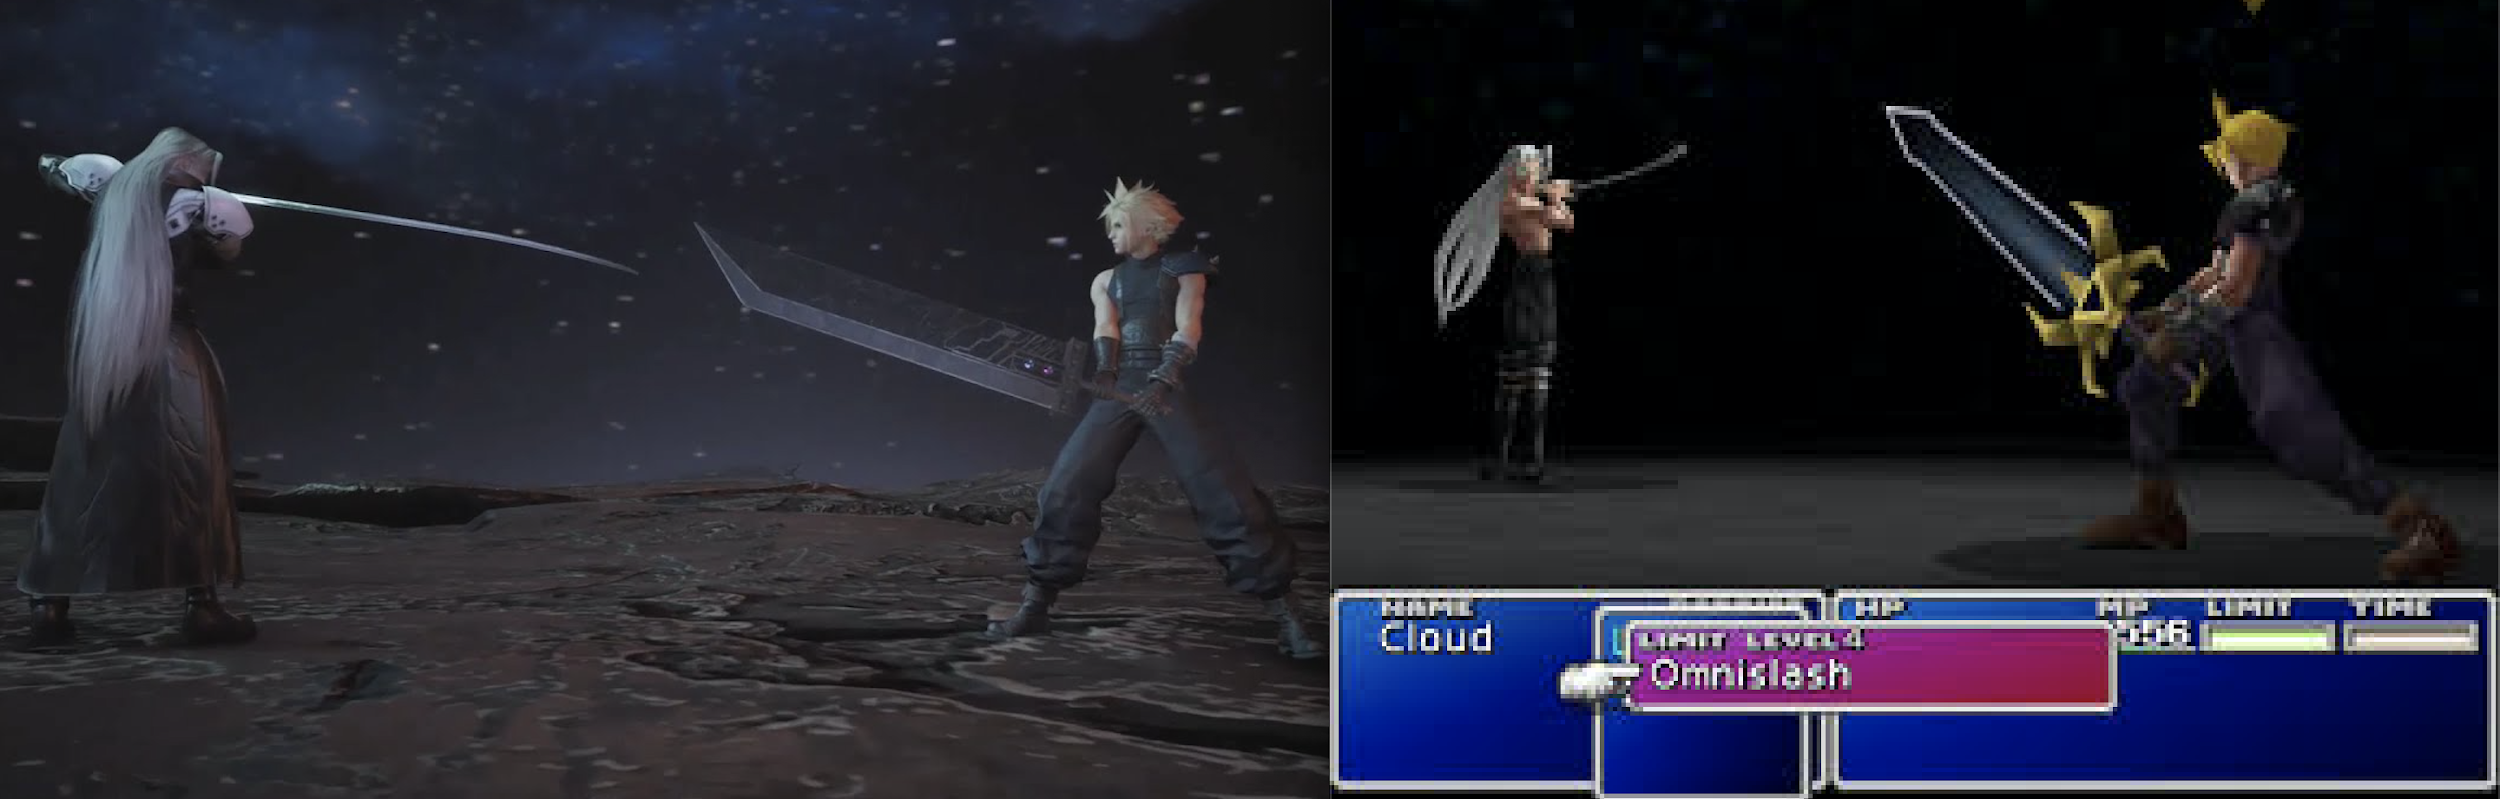 Sephiroth vs. Cloud at the end of Final Fantasy VII Remake and Final Fantasy VII